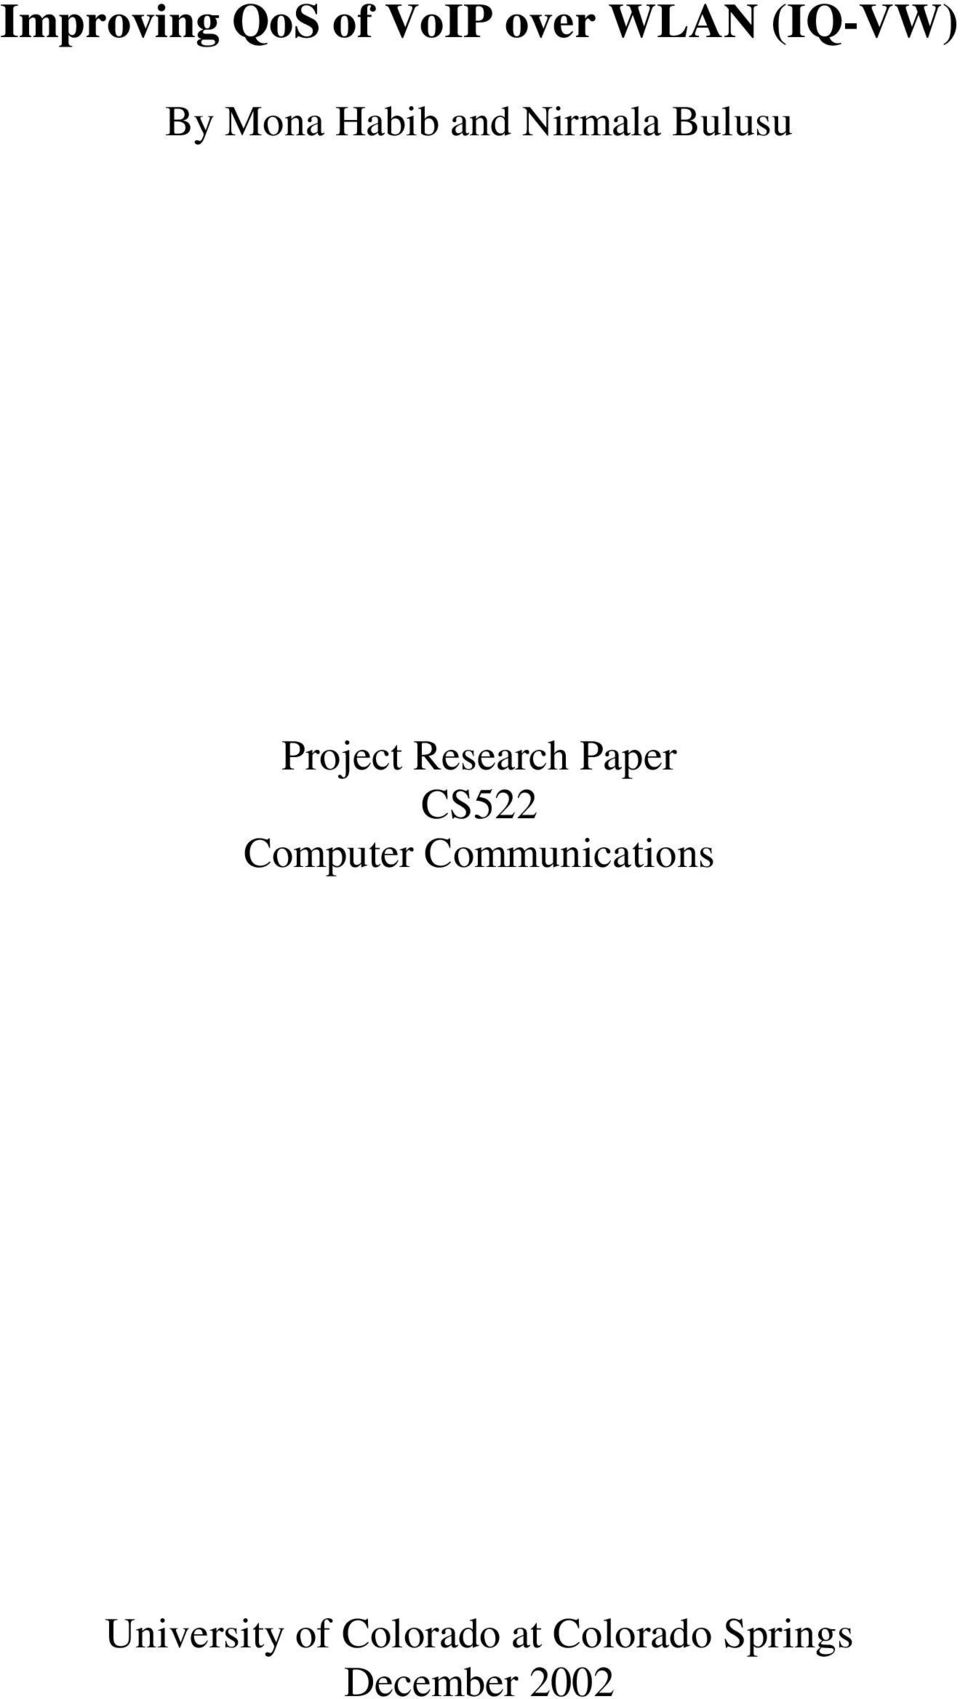 Research Paper CS522 Computer Communications